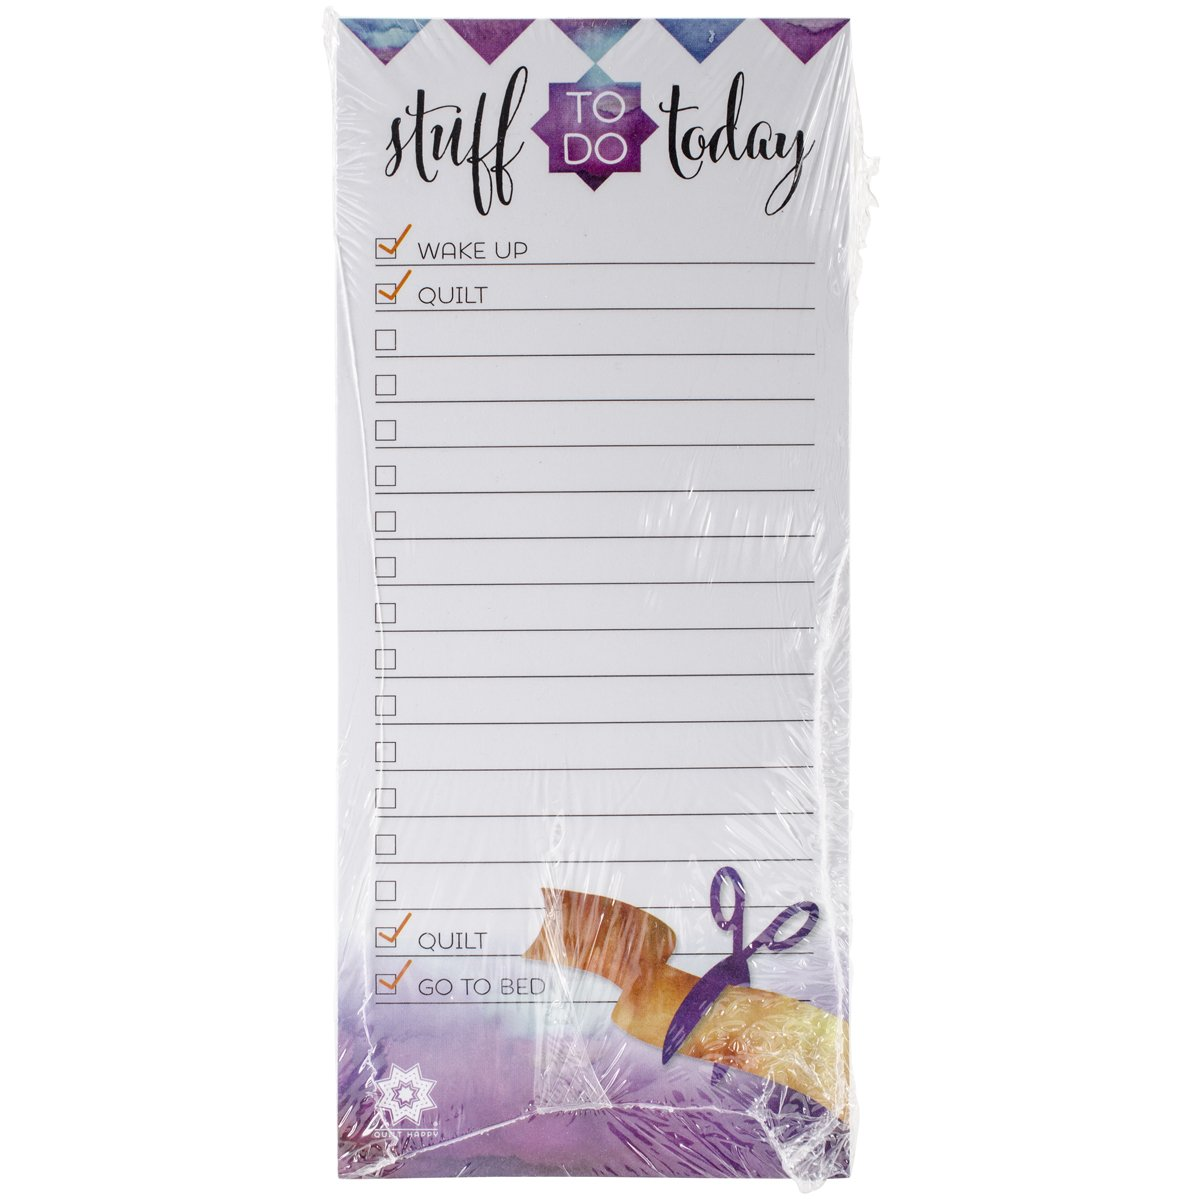 K1C2 QH422 100 Sheets of Quilt Happy to Do List Pad